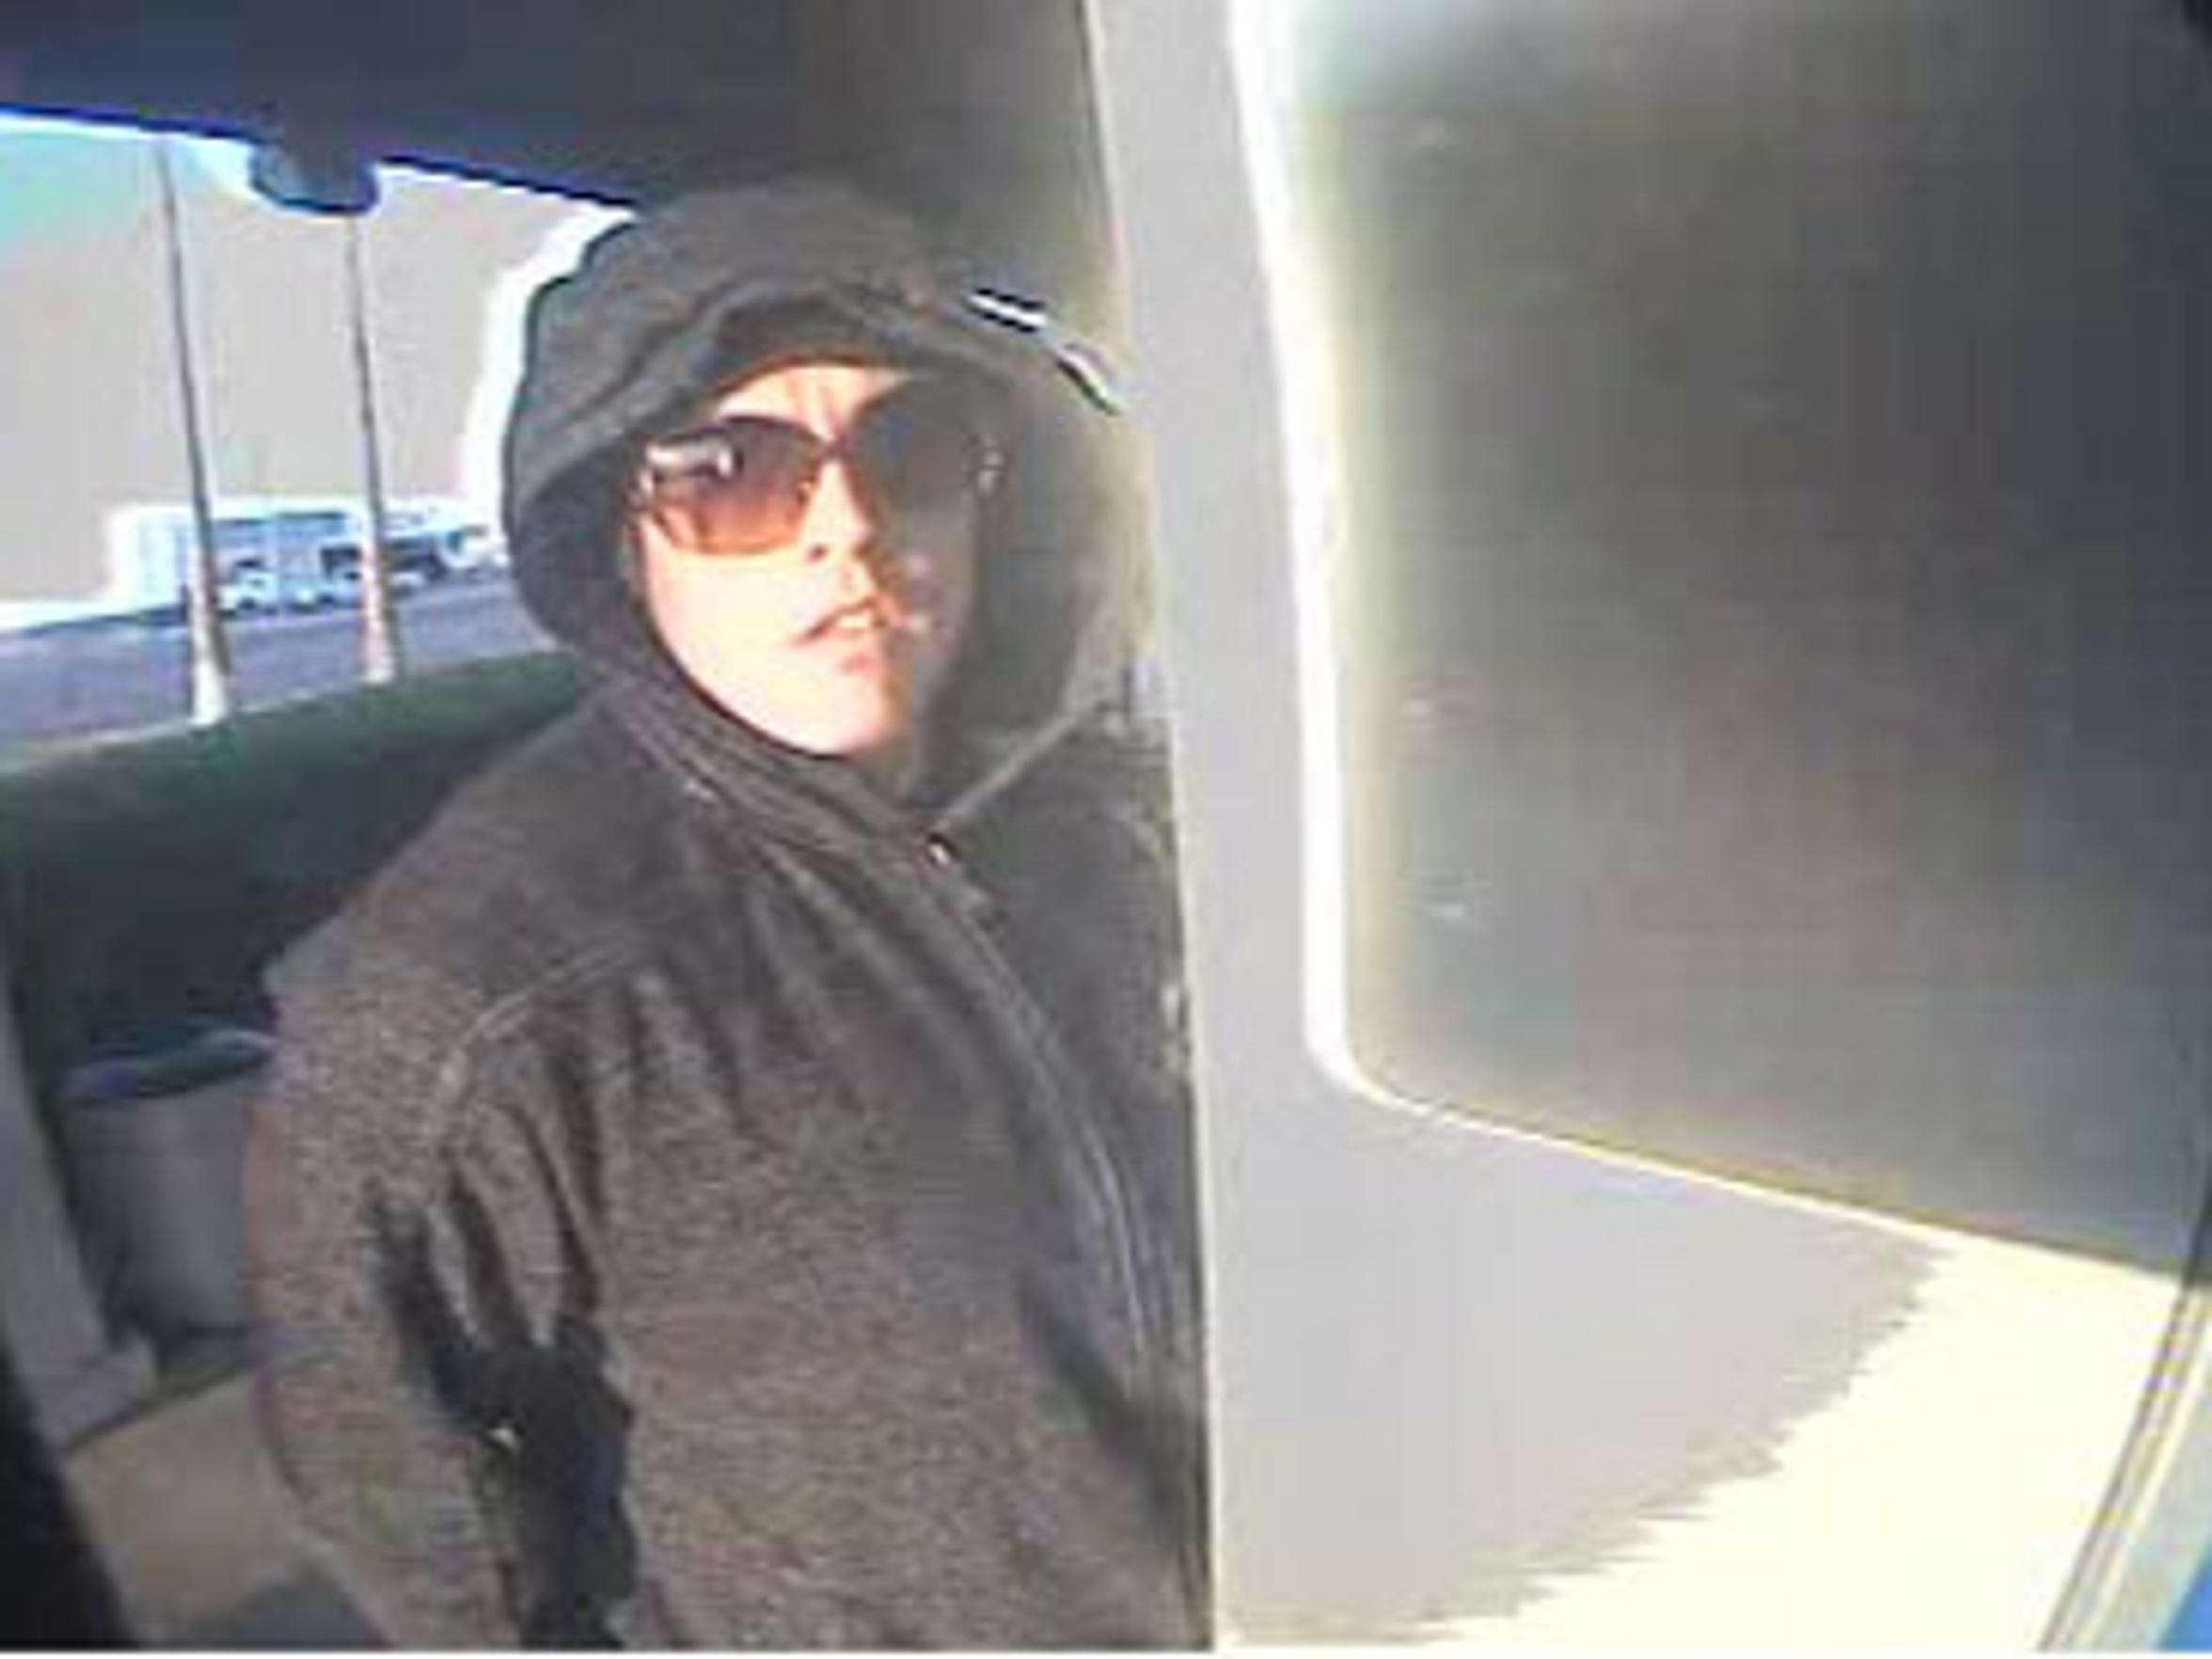 An ATM surveillance camera at the Chase Bank branch in Peoria captures Billy Wayne Brymer III shortly before the robbery on Feb. 29, 2012.